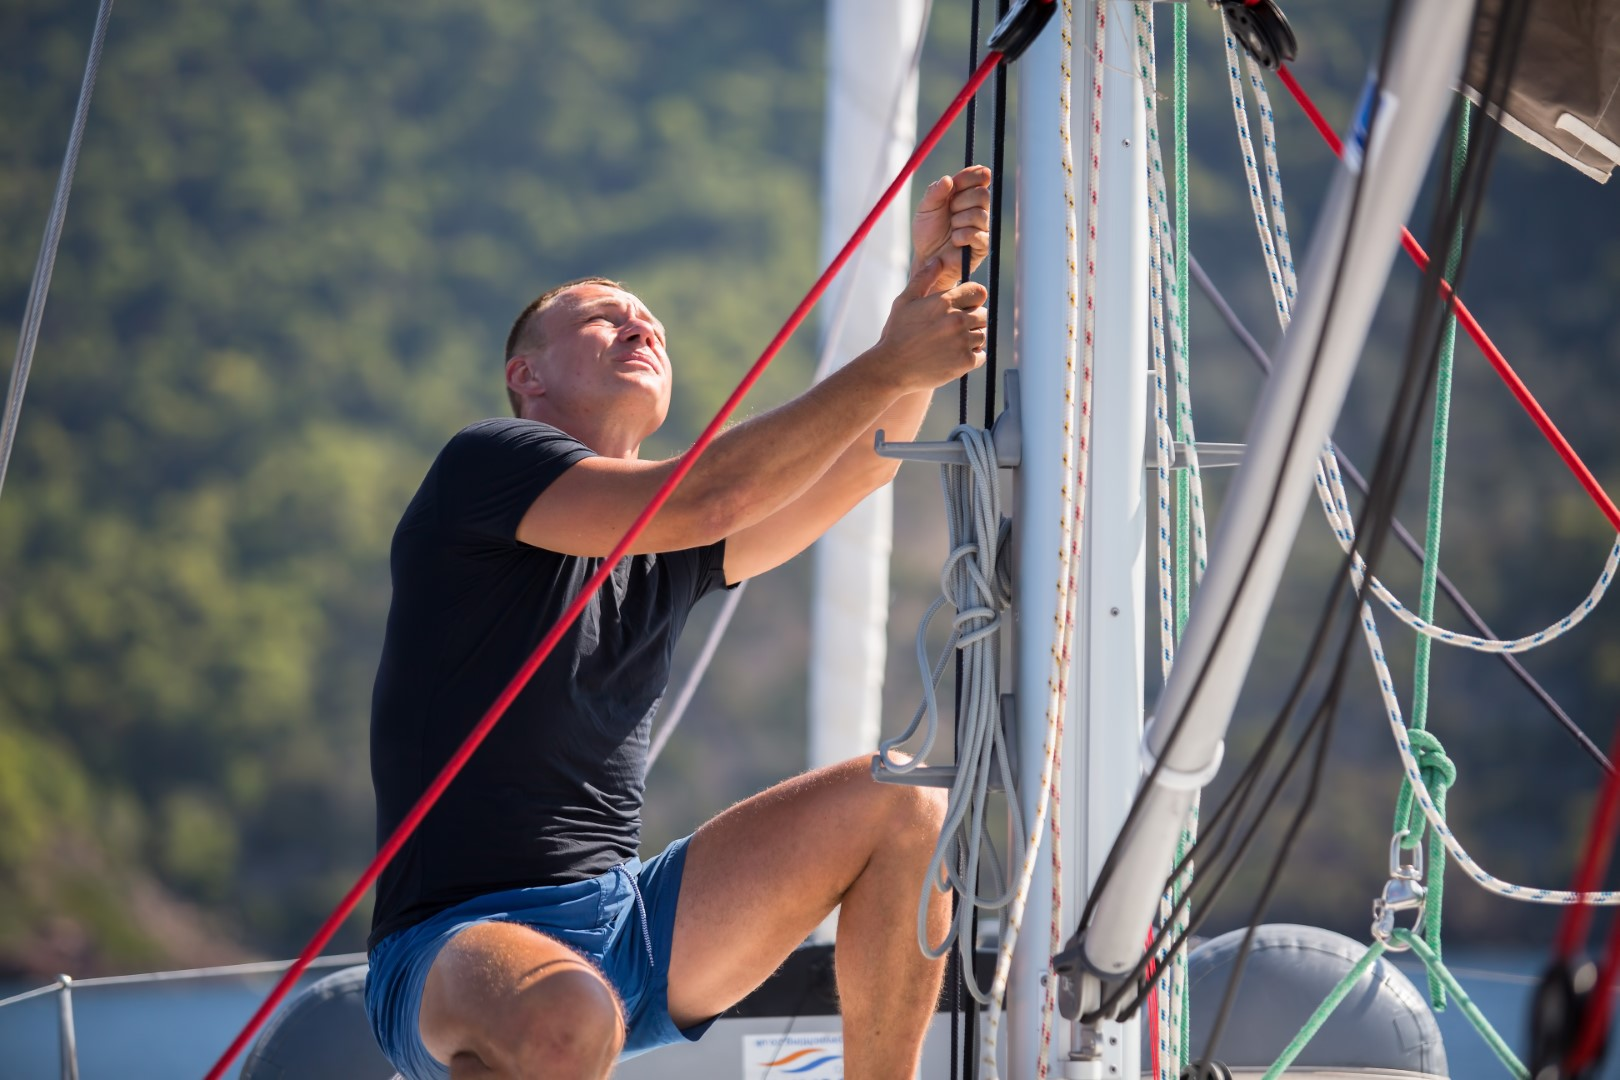 skipper-sailing-yacht-boat-ropes-man-sea